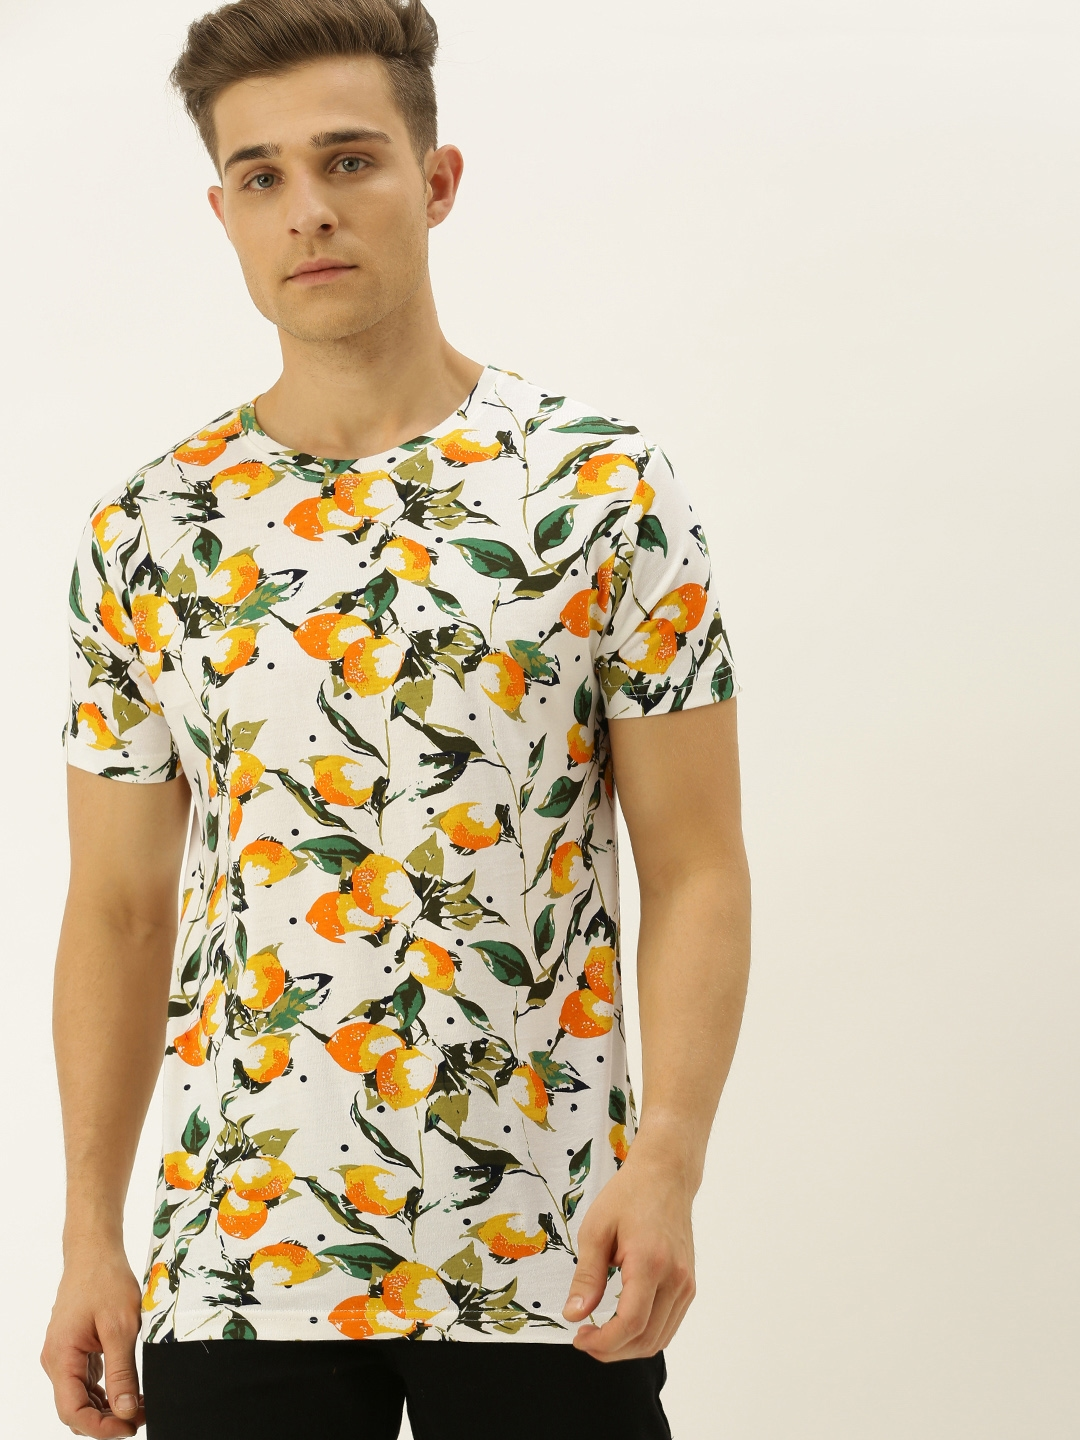 VEIRDO Men White   Orange Floral Printed Round Neck T shirt